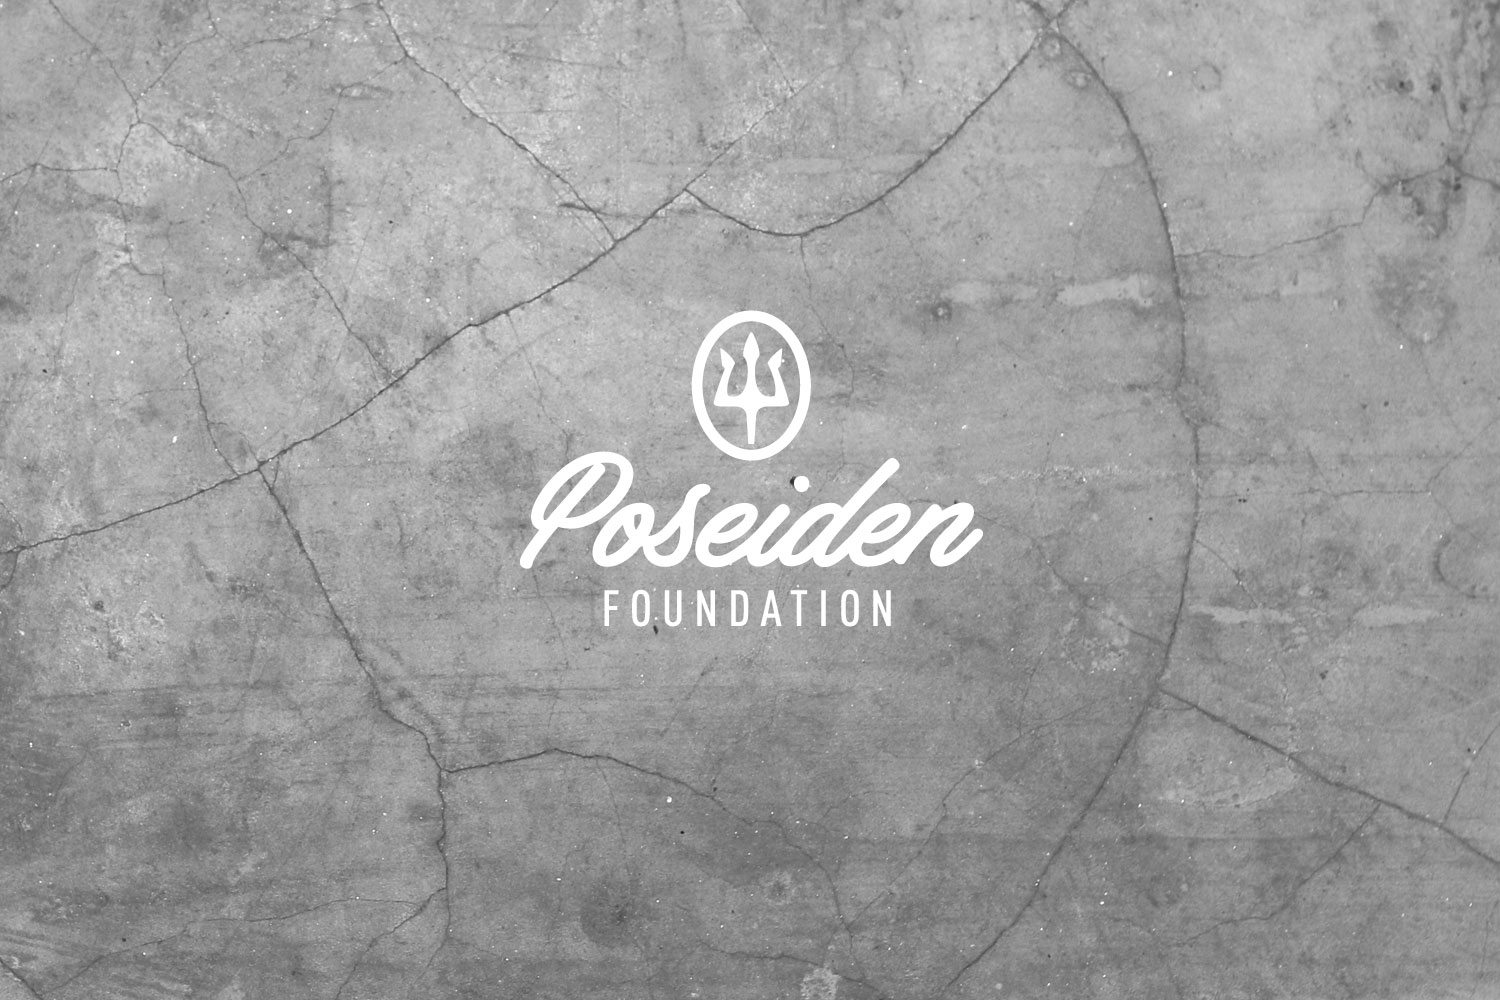 Poseiden Foundation logo